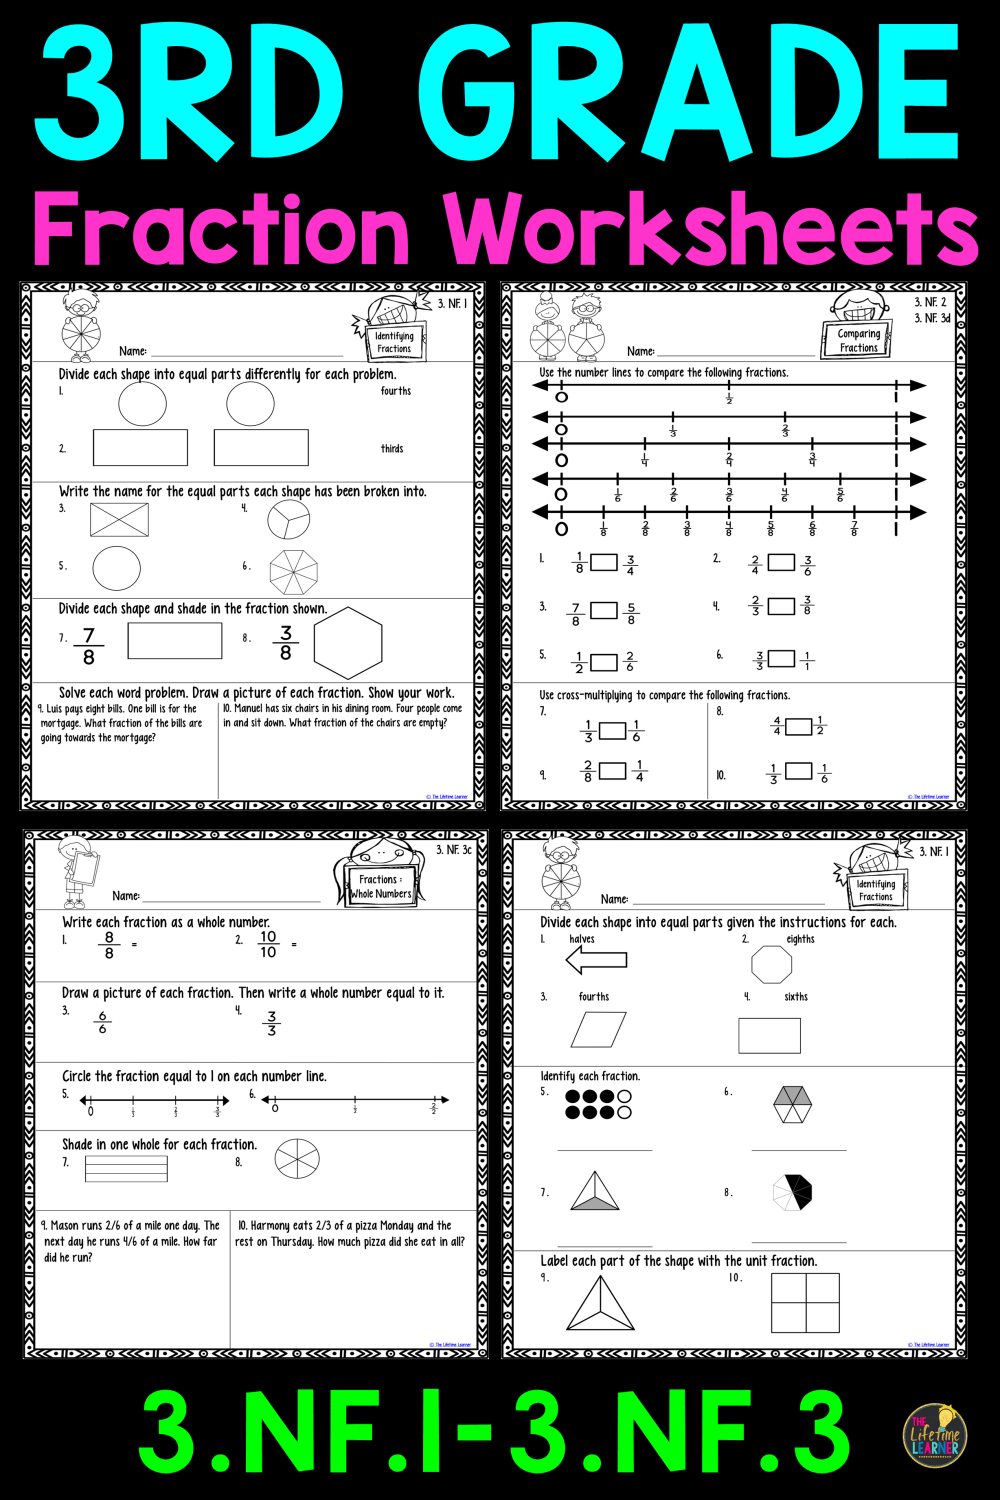 medium resolution of 21 Best 3rd Grade Fraction Practice Worksheets images on Worksheets Ideas